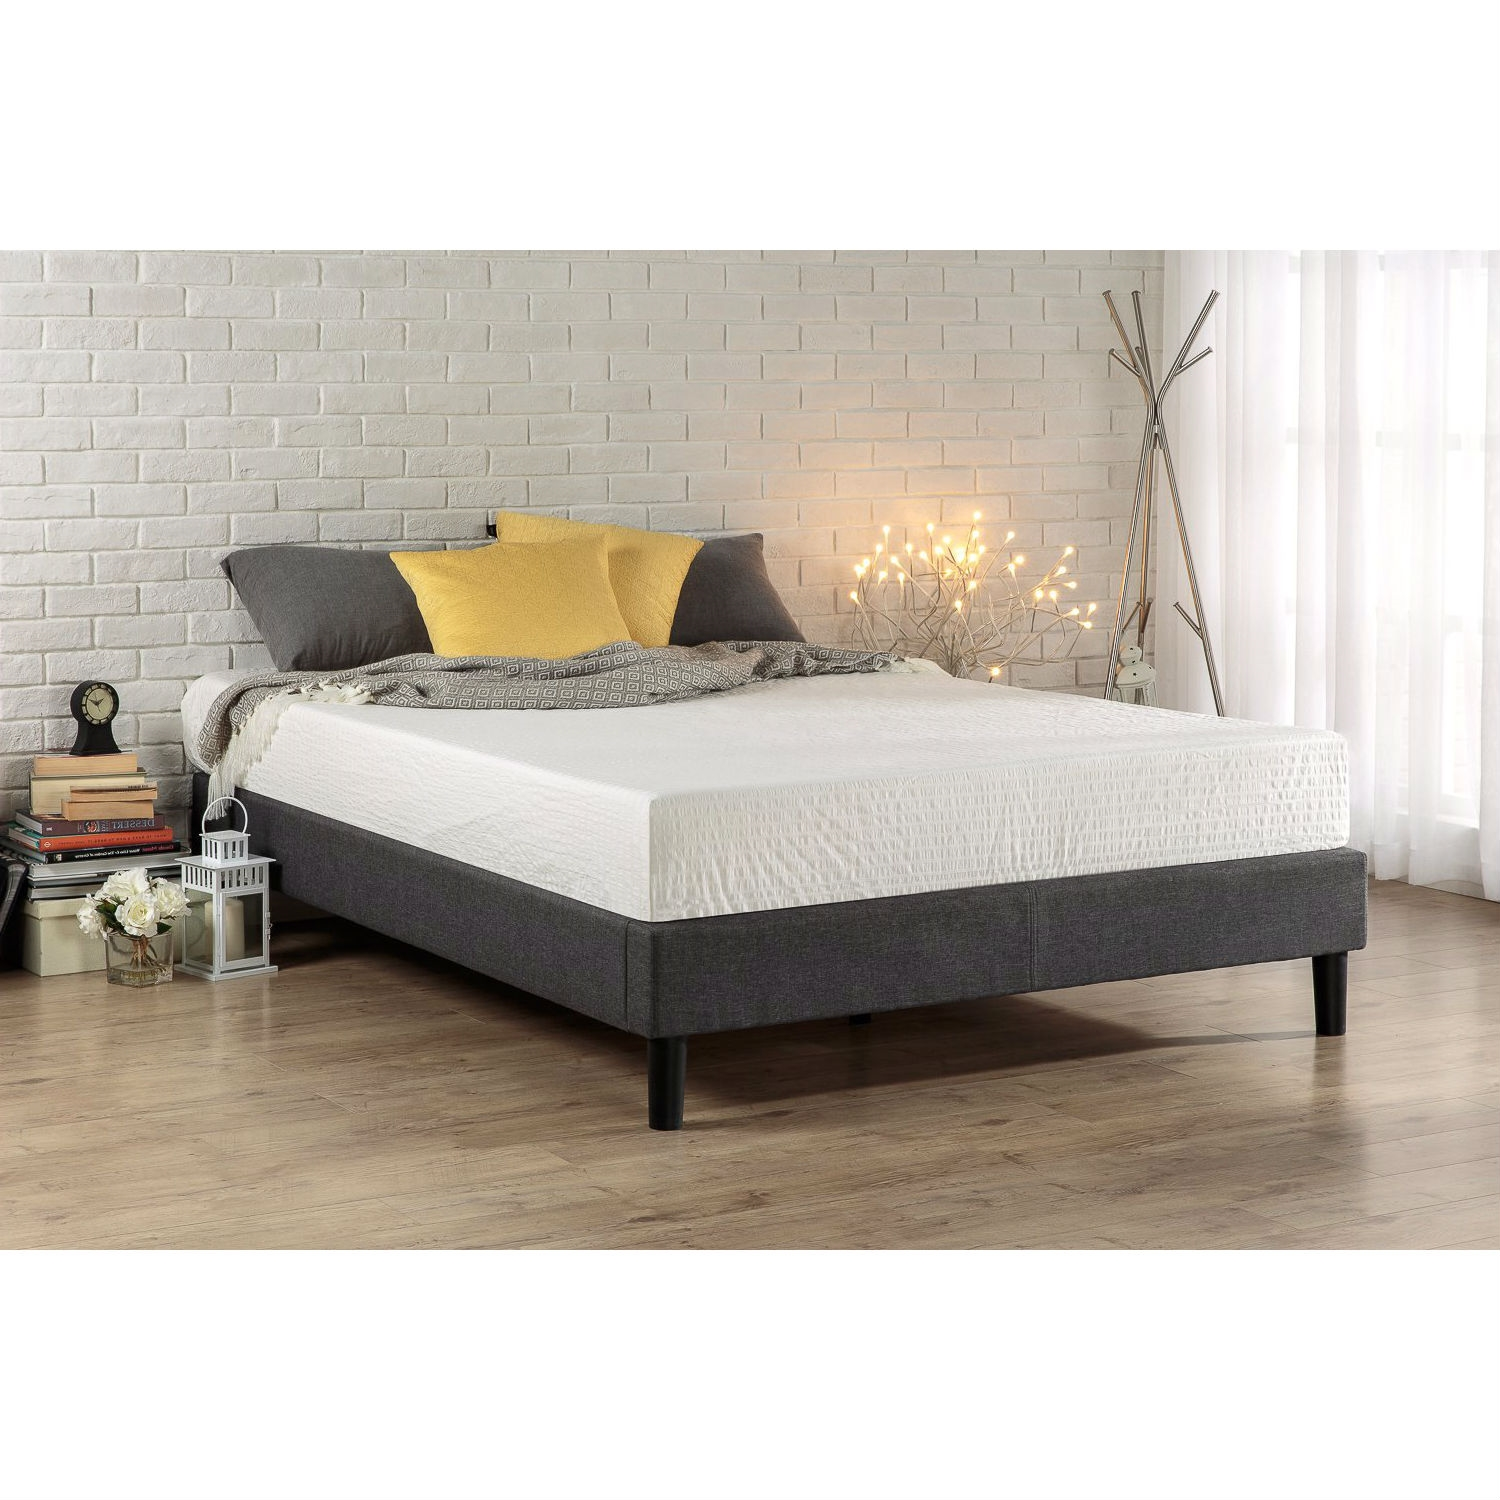 King Size Grey Upholstered Platform Bed Frame With Mid Century Style Legs Fastfurnishings Com